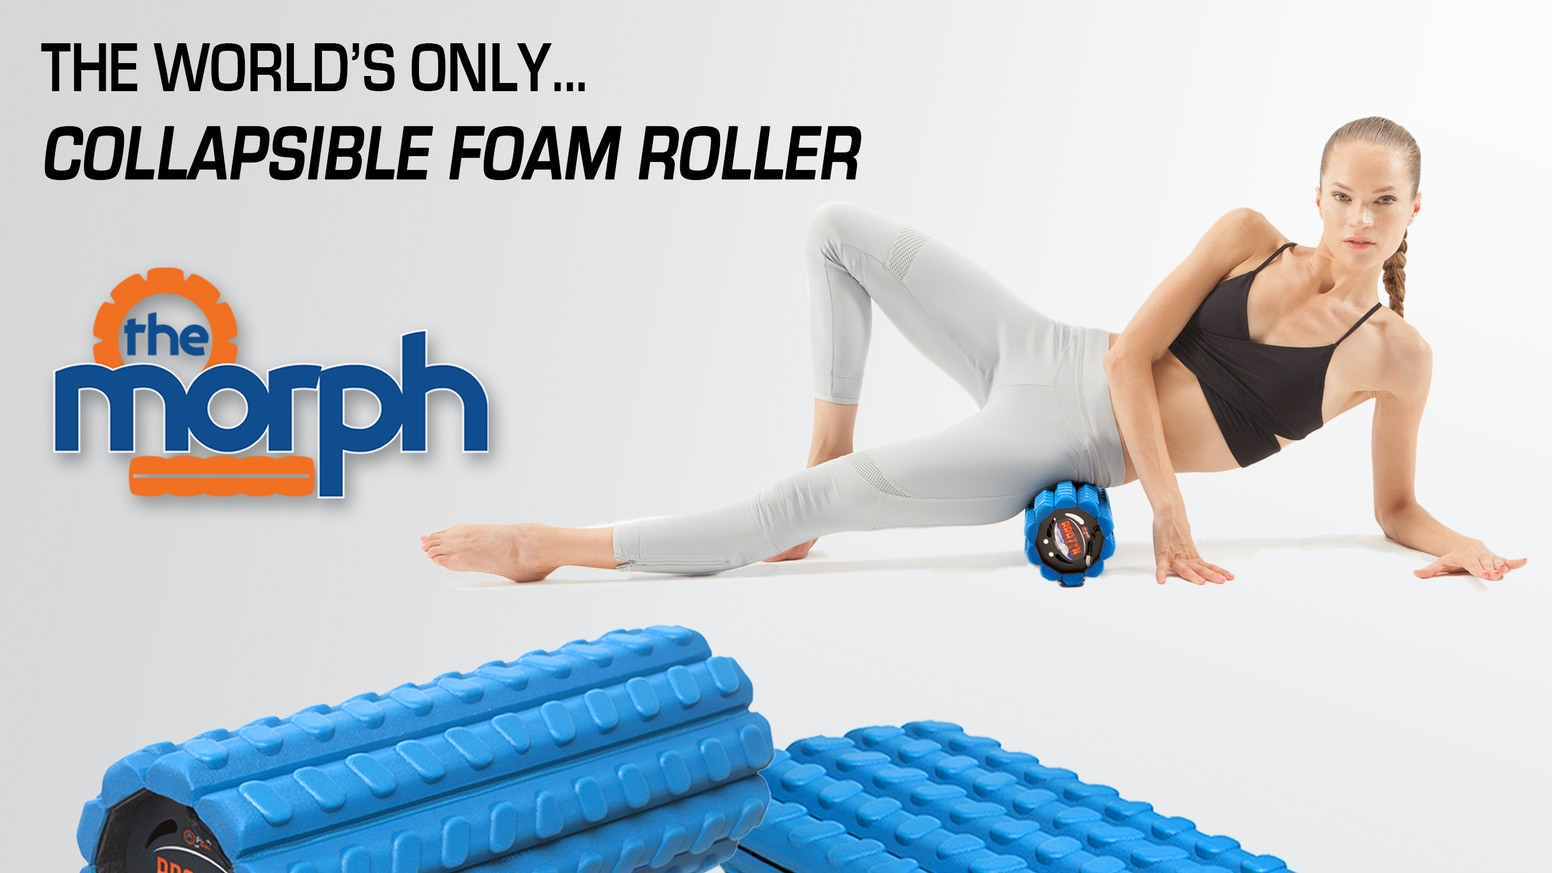 THE WORLD'S FIRST go anywhere, do anything, easy-to-pack, mobility-enhancing, shape-shifting, butt-kicking COLLAPSIBLE FOAM ROLLER!